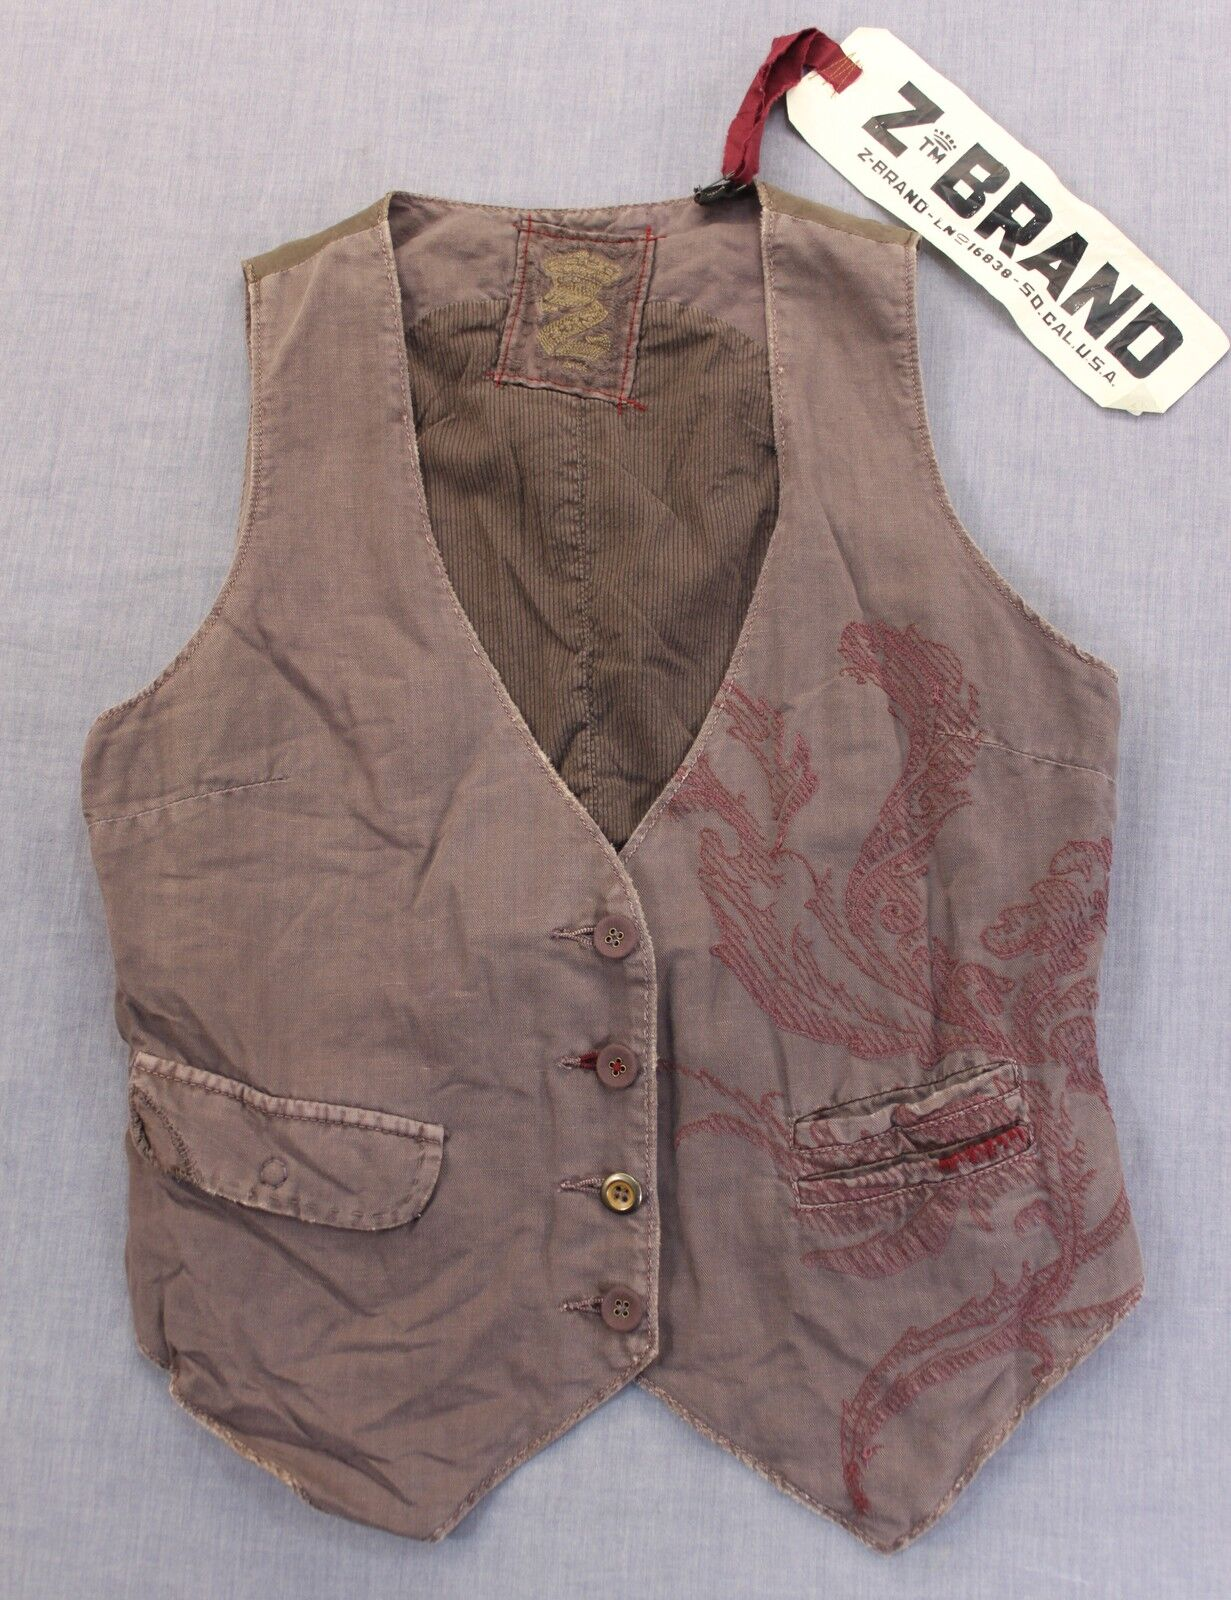 Z-BRAND AGED Men lila grau FLORAL EMBROIDEROT LINEN DISTRESSED VEST NWT S 290